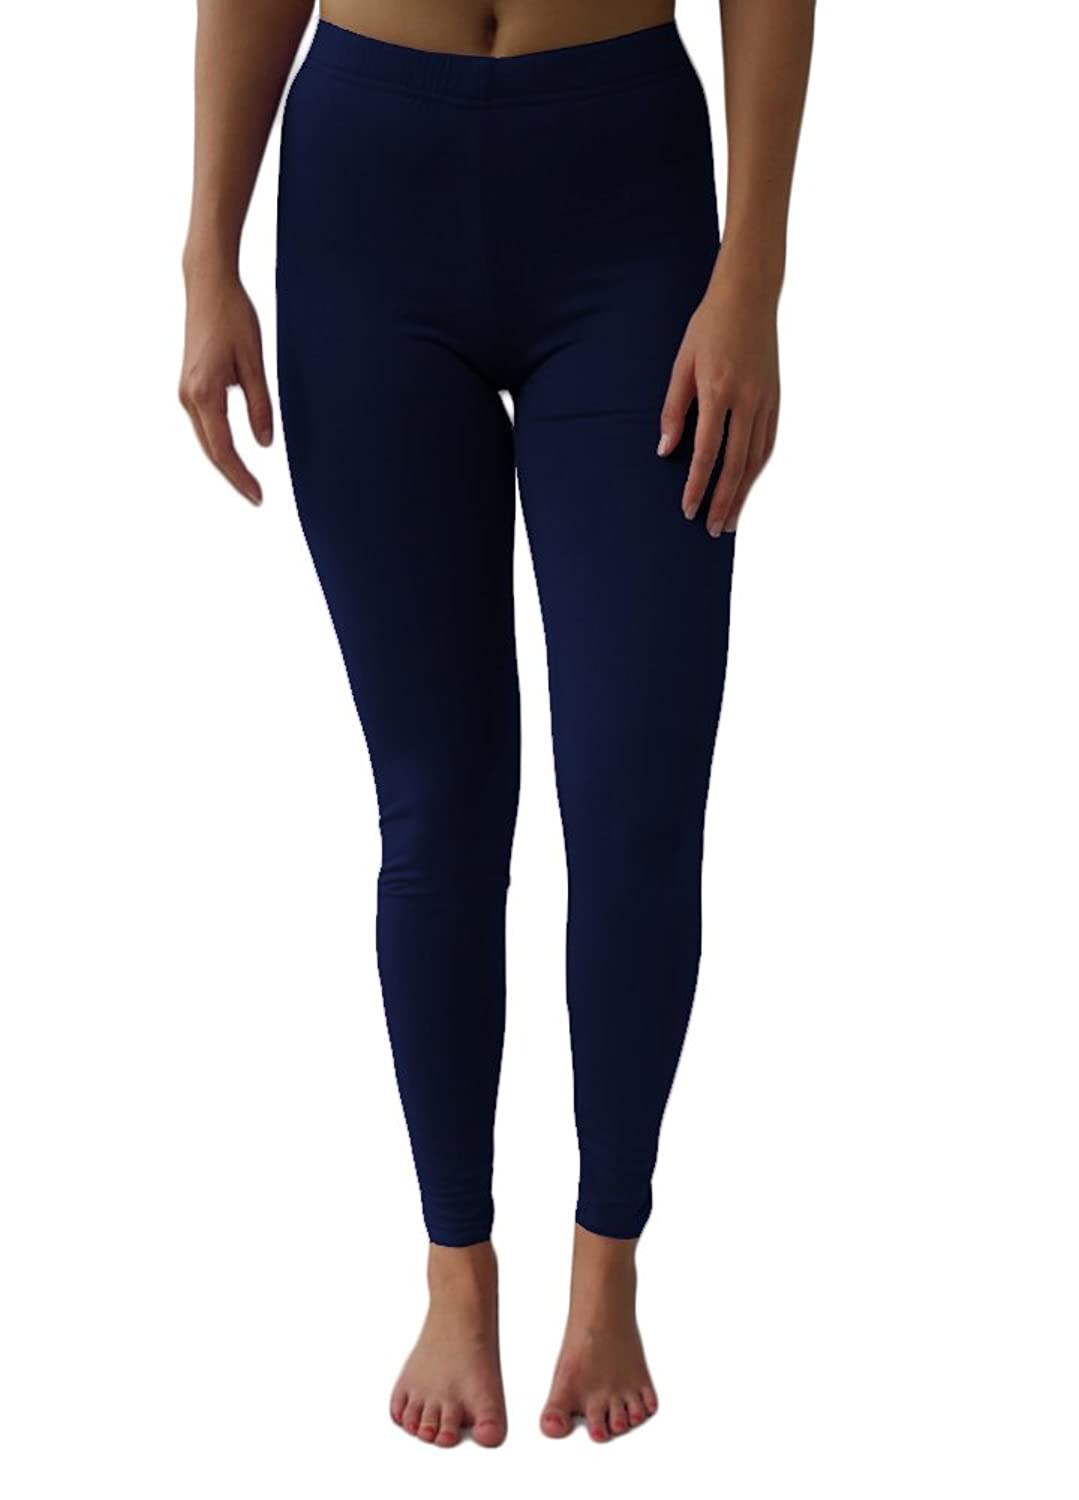 9M Women's Extreme Winter Plush Lined Ultra-Soft Thermal Leggings